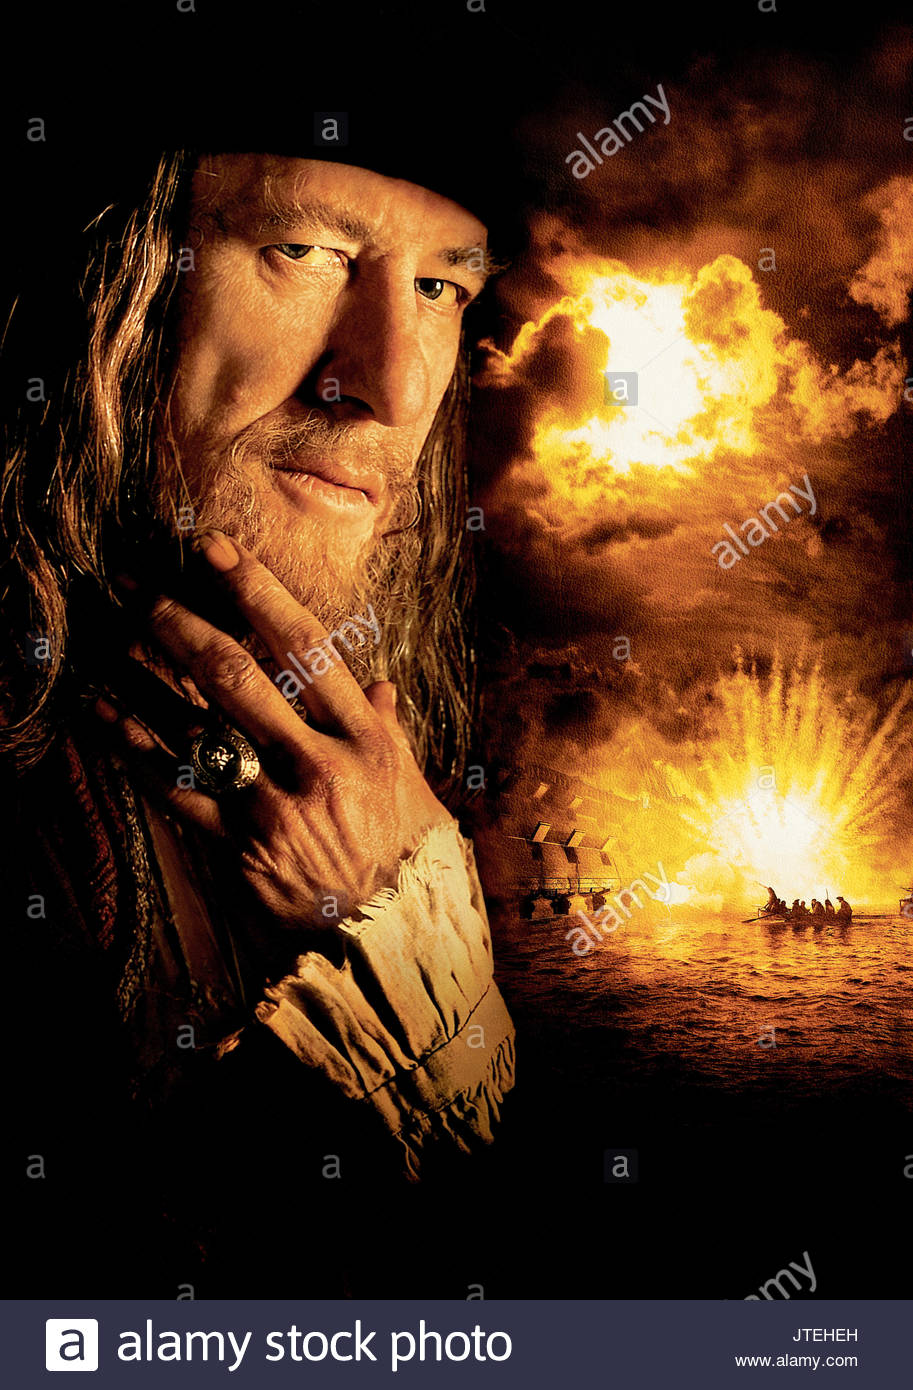 Geoffrey Rush Pirates Of The Caribbean The Curse Of The Black Pearl Stock Photo Alamy